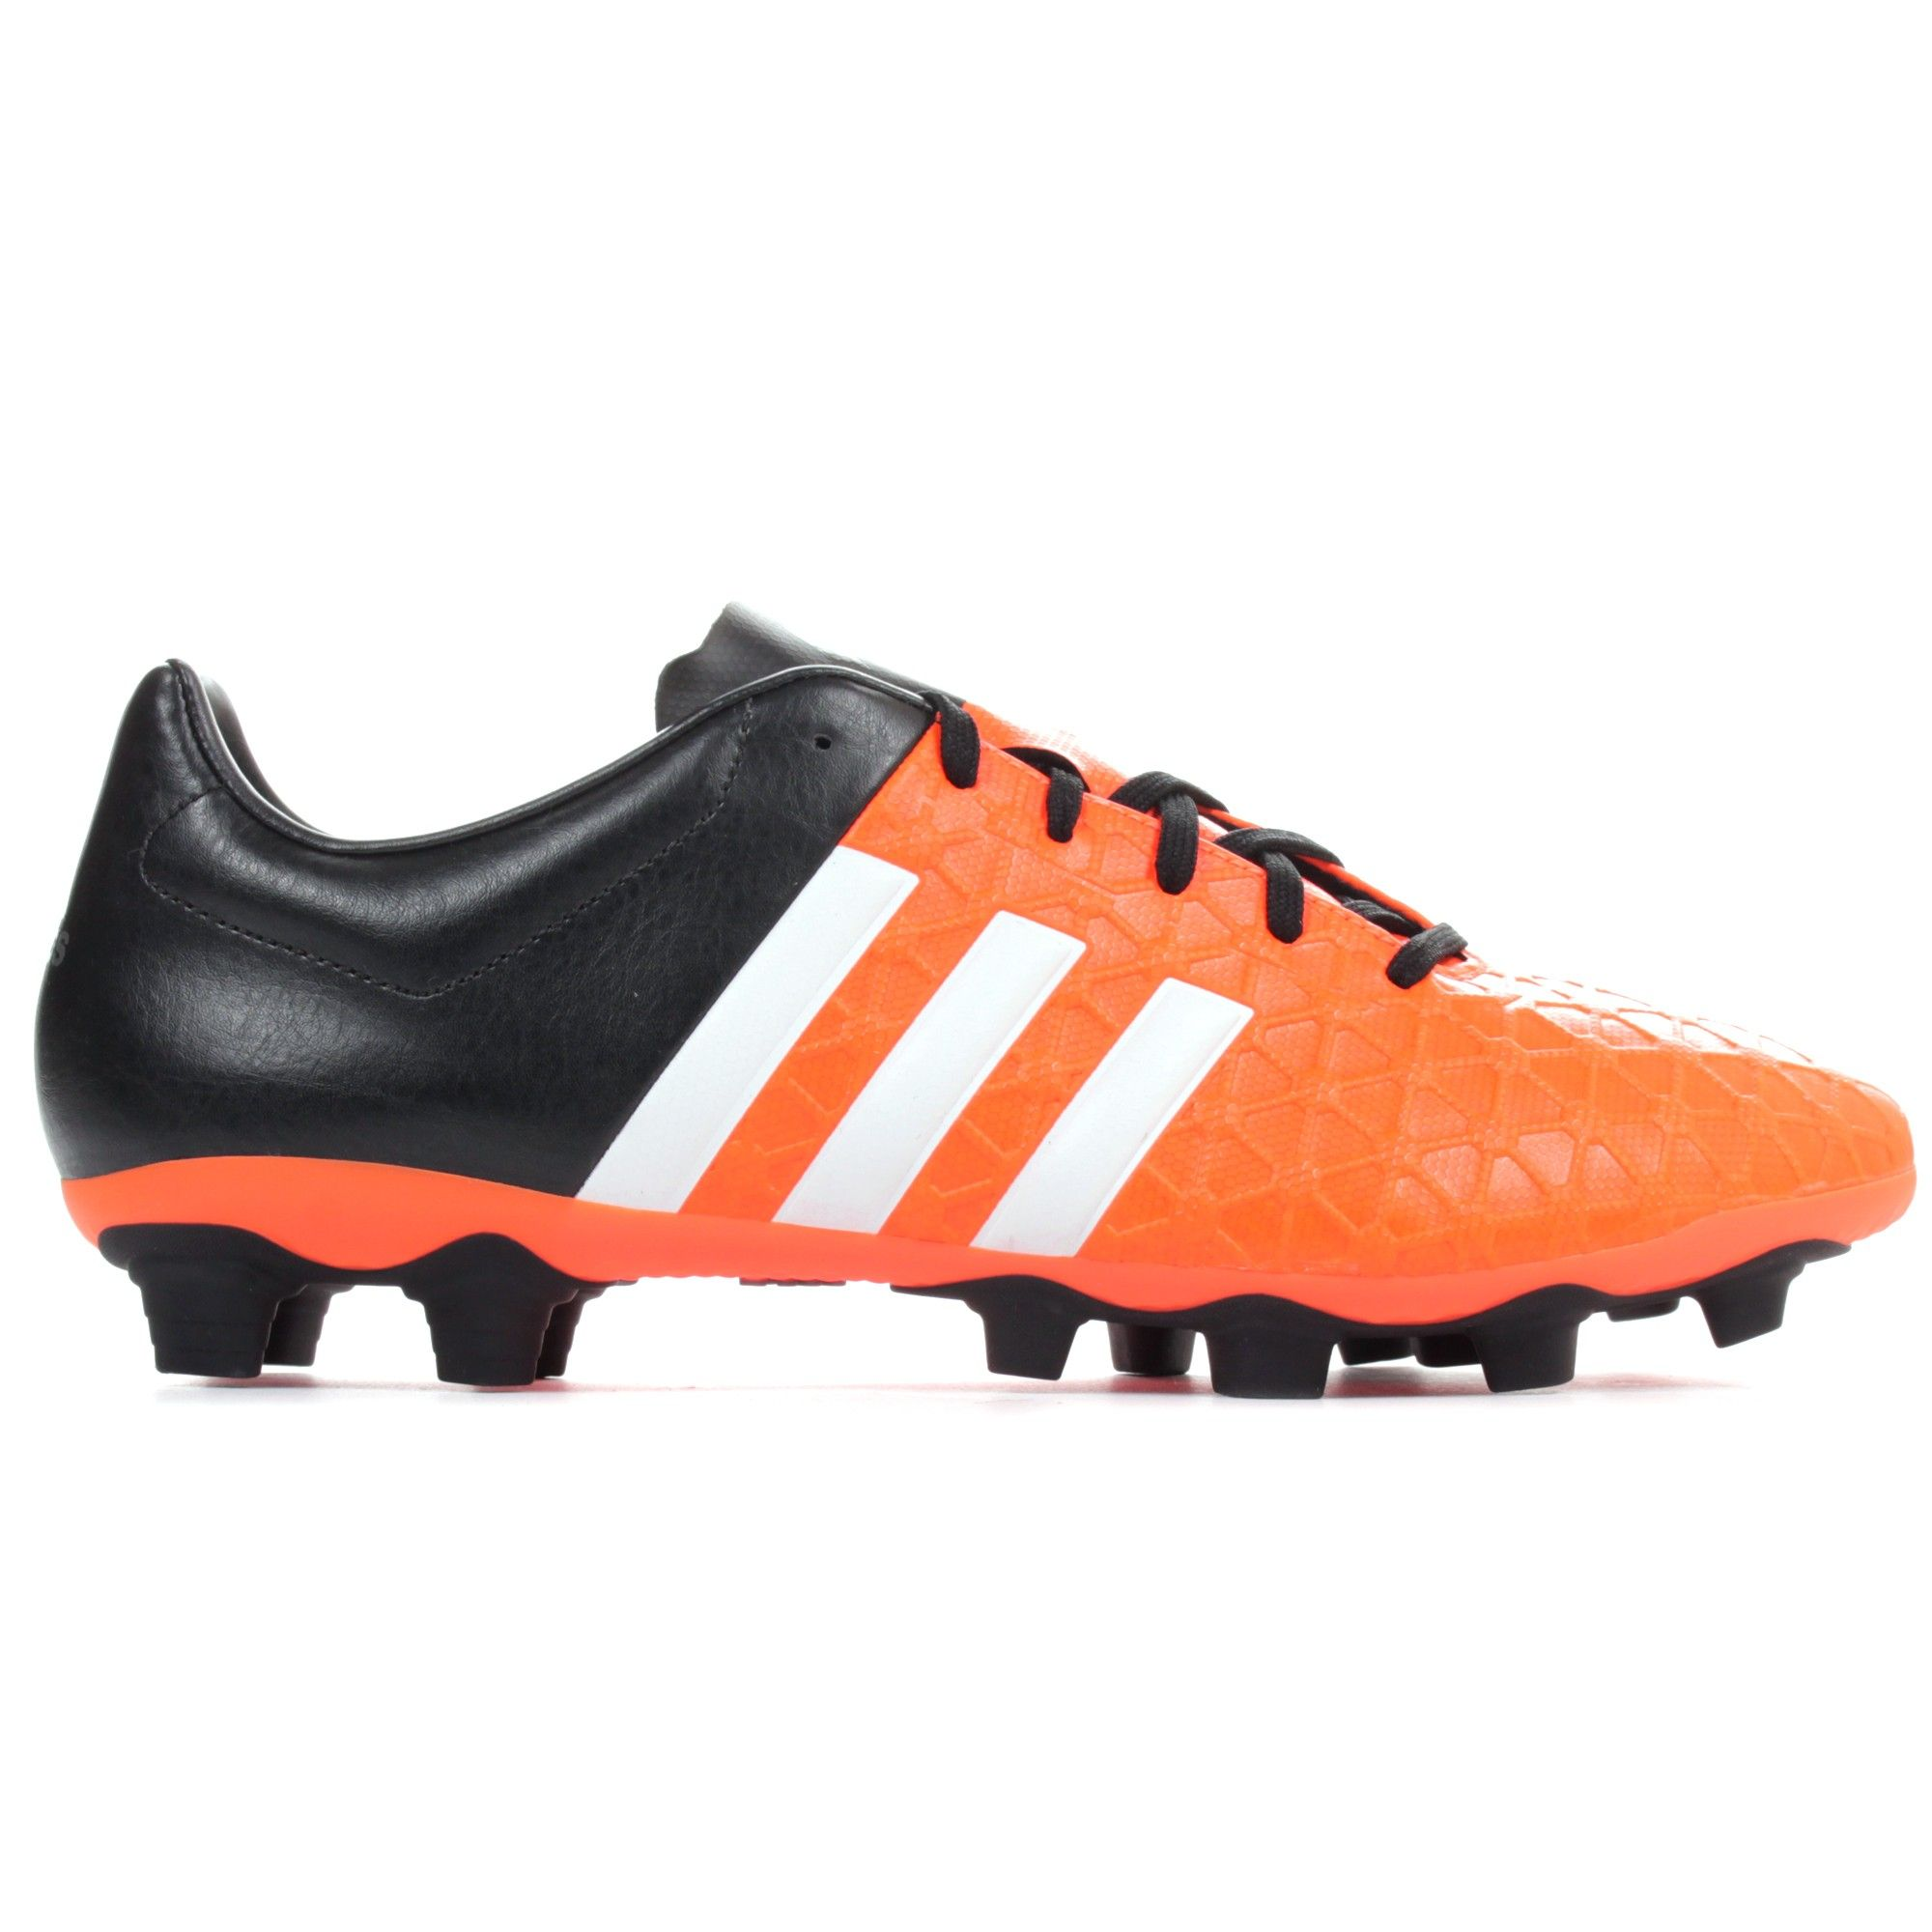 the latest 46dcb aa74b adidas Ace 15.4 FxG Football Boot | Football Boots ...